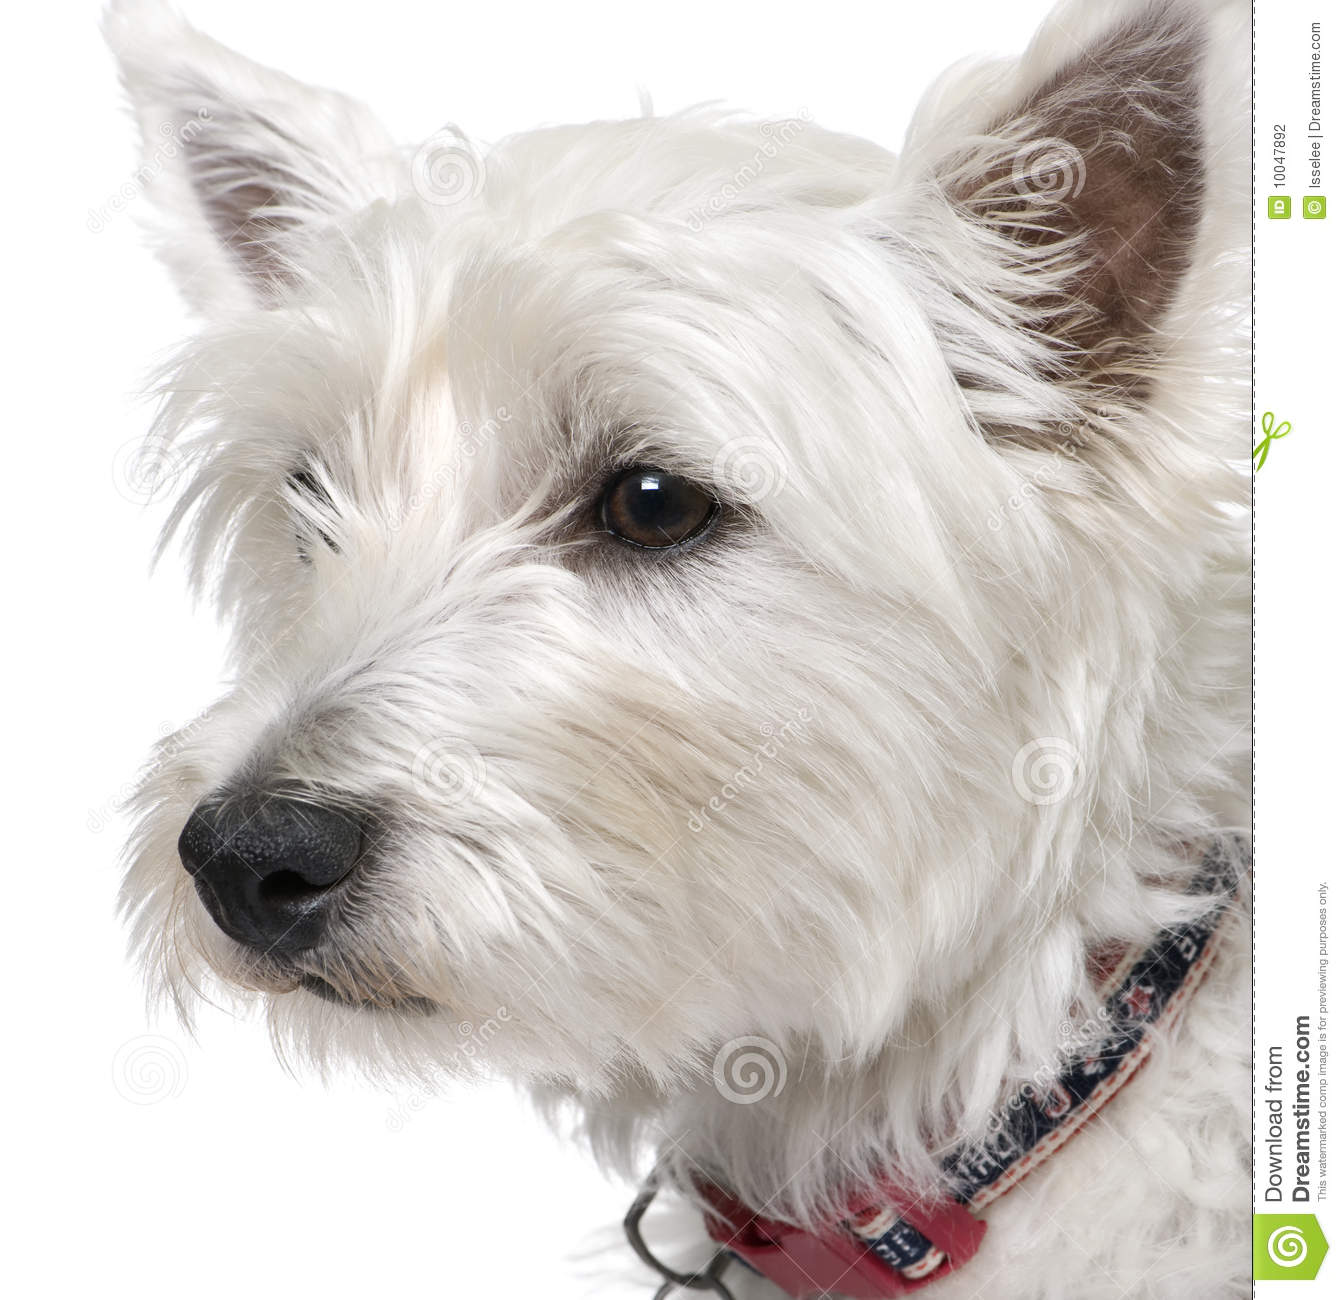 Westie (West Highland White Terrier) Royalty Free Stock Image ...